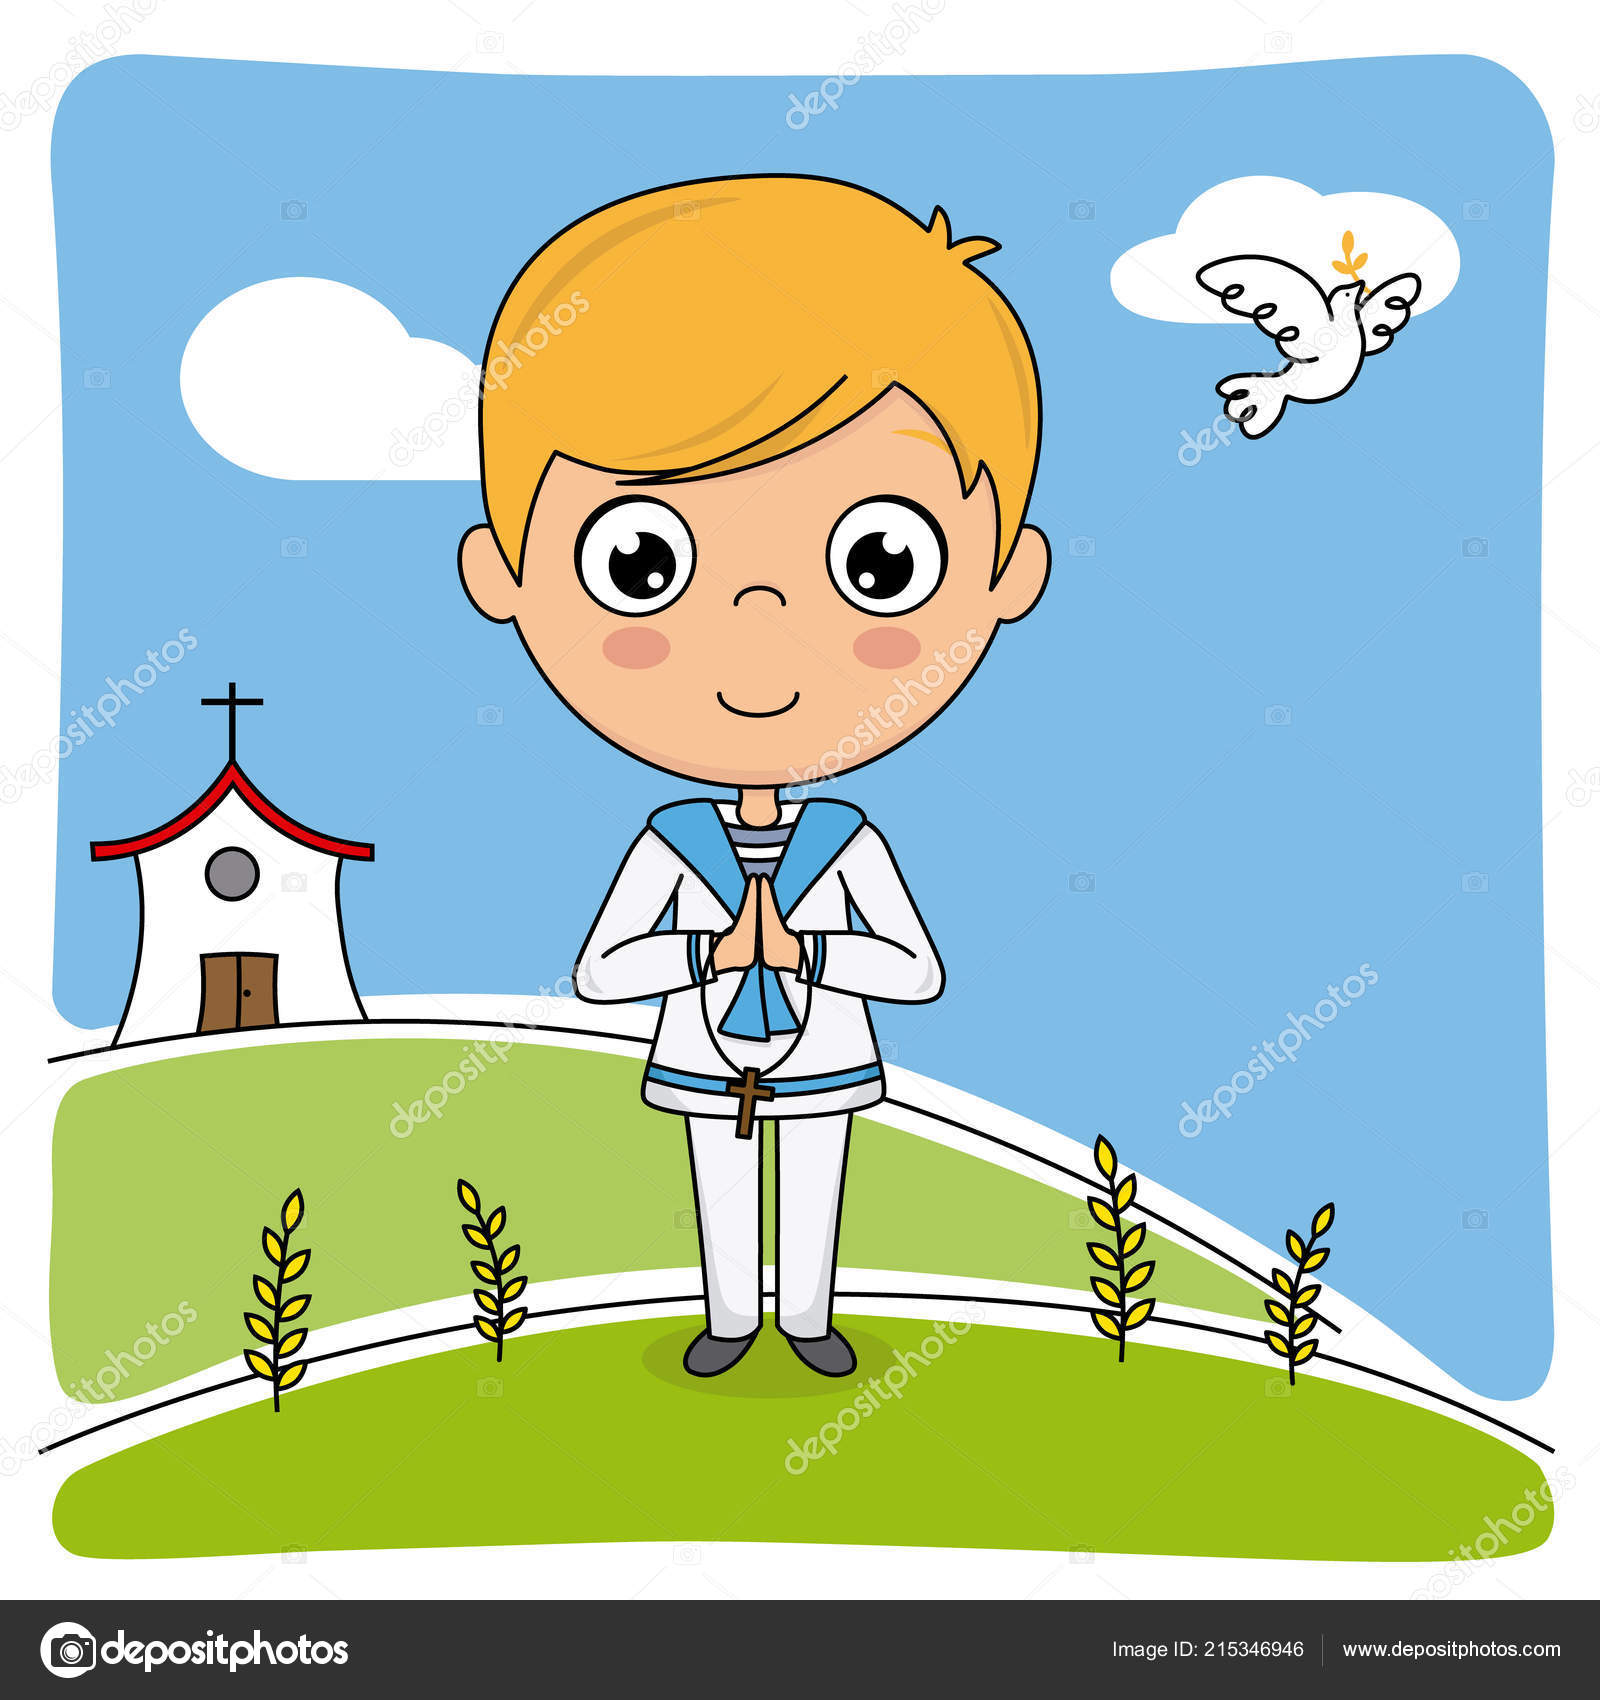 Free Christian Cliparts Prayer, Download Free Clip Art, Free Clip Art on  Clipart Library